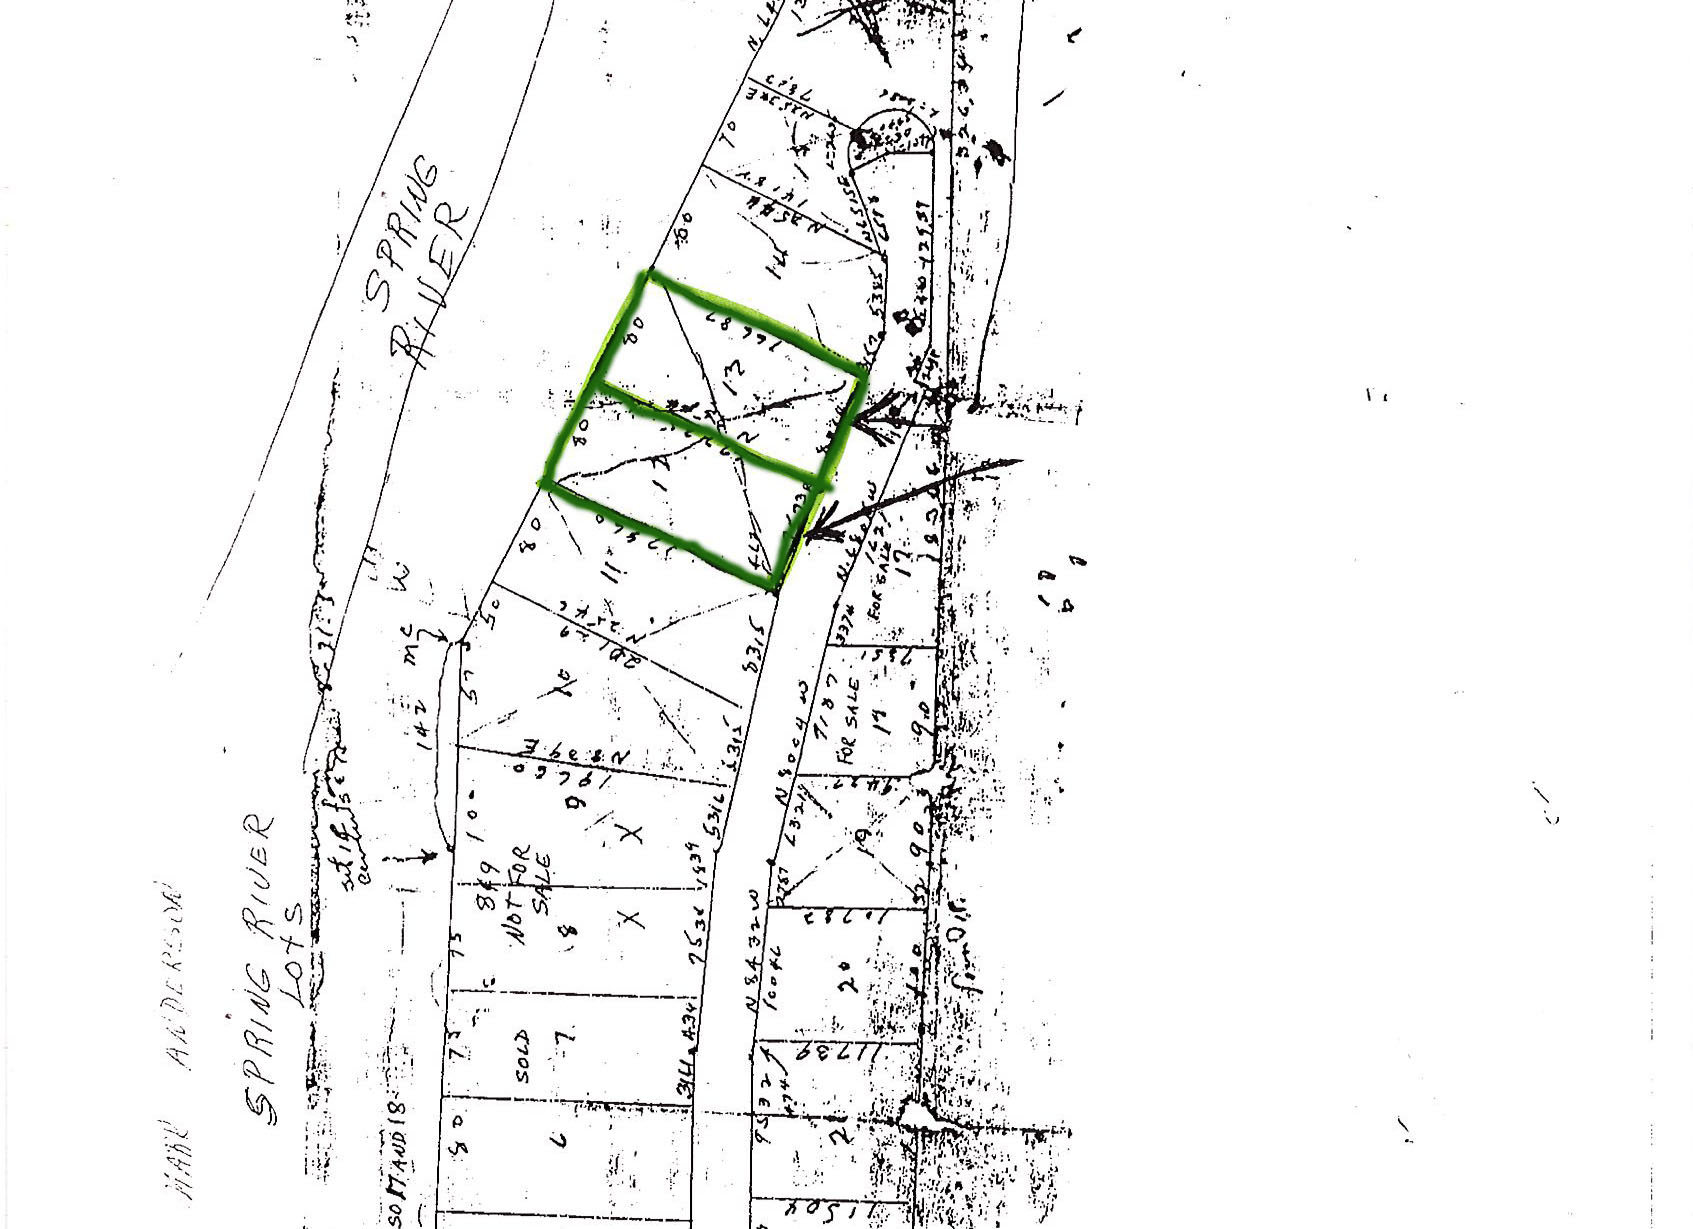 C1553-Plat.jpg - 0.62 acres of Recreational Land / Residential Land / Undeveloped Land for sale. River Heights, Mammoth Spring, AR